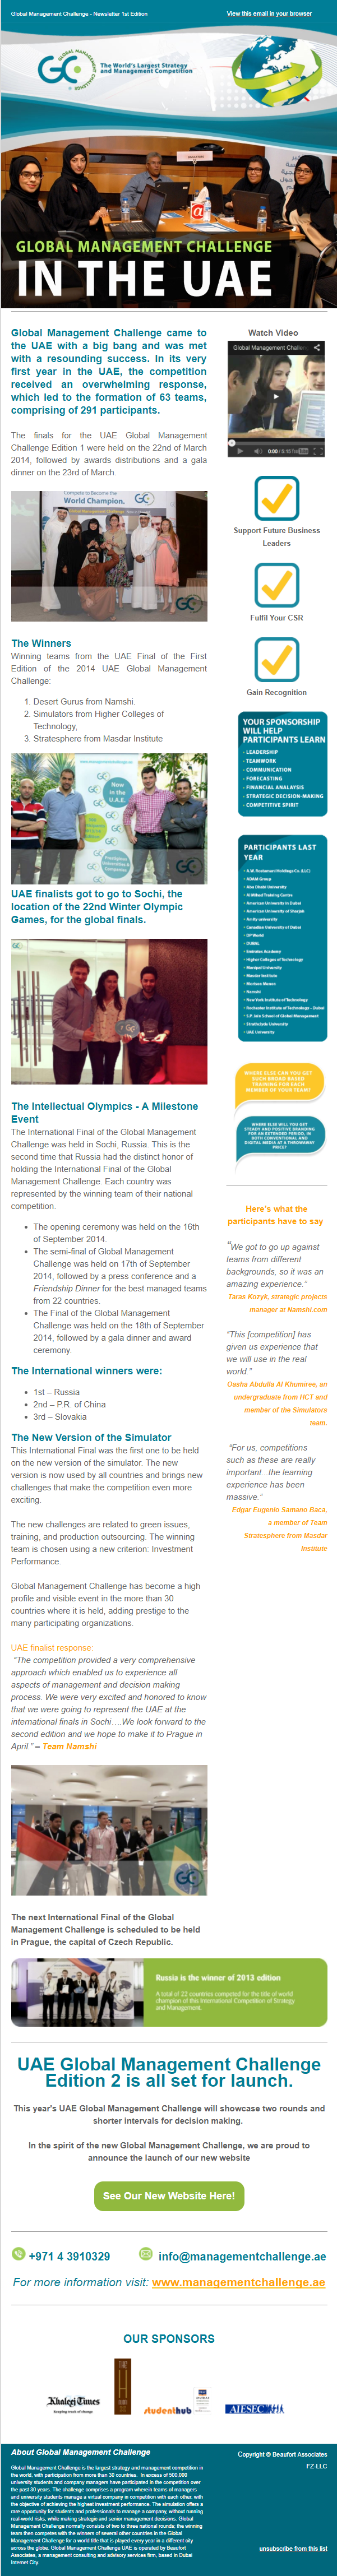 Your Global Management Challenge Update - News Letter Edition 1